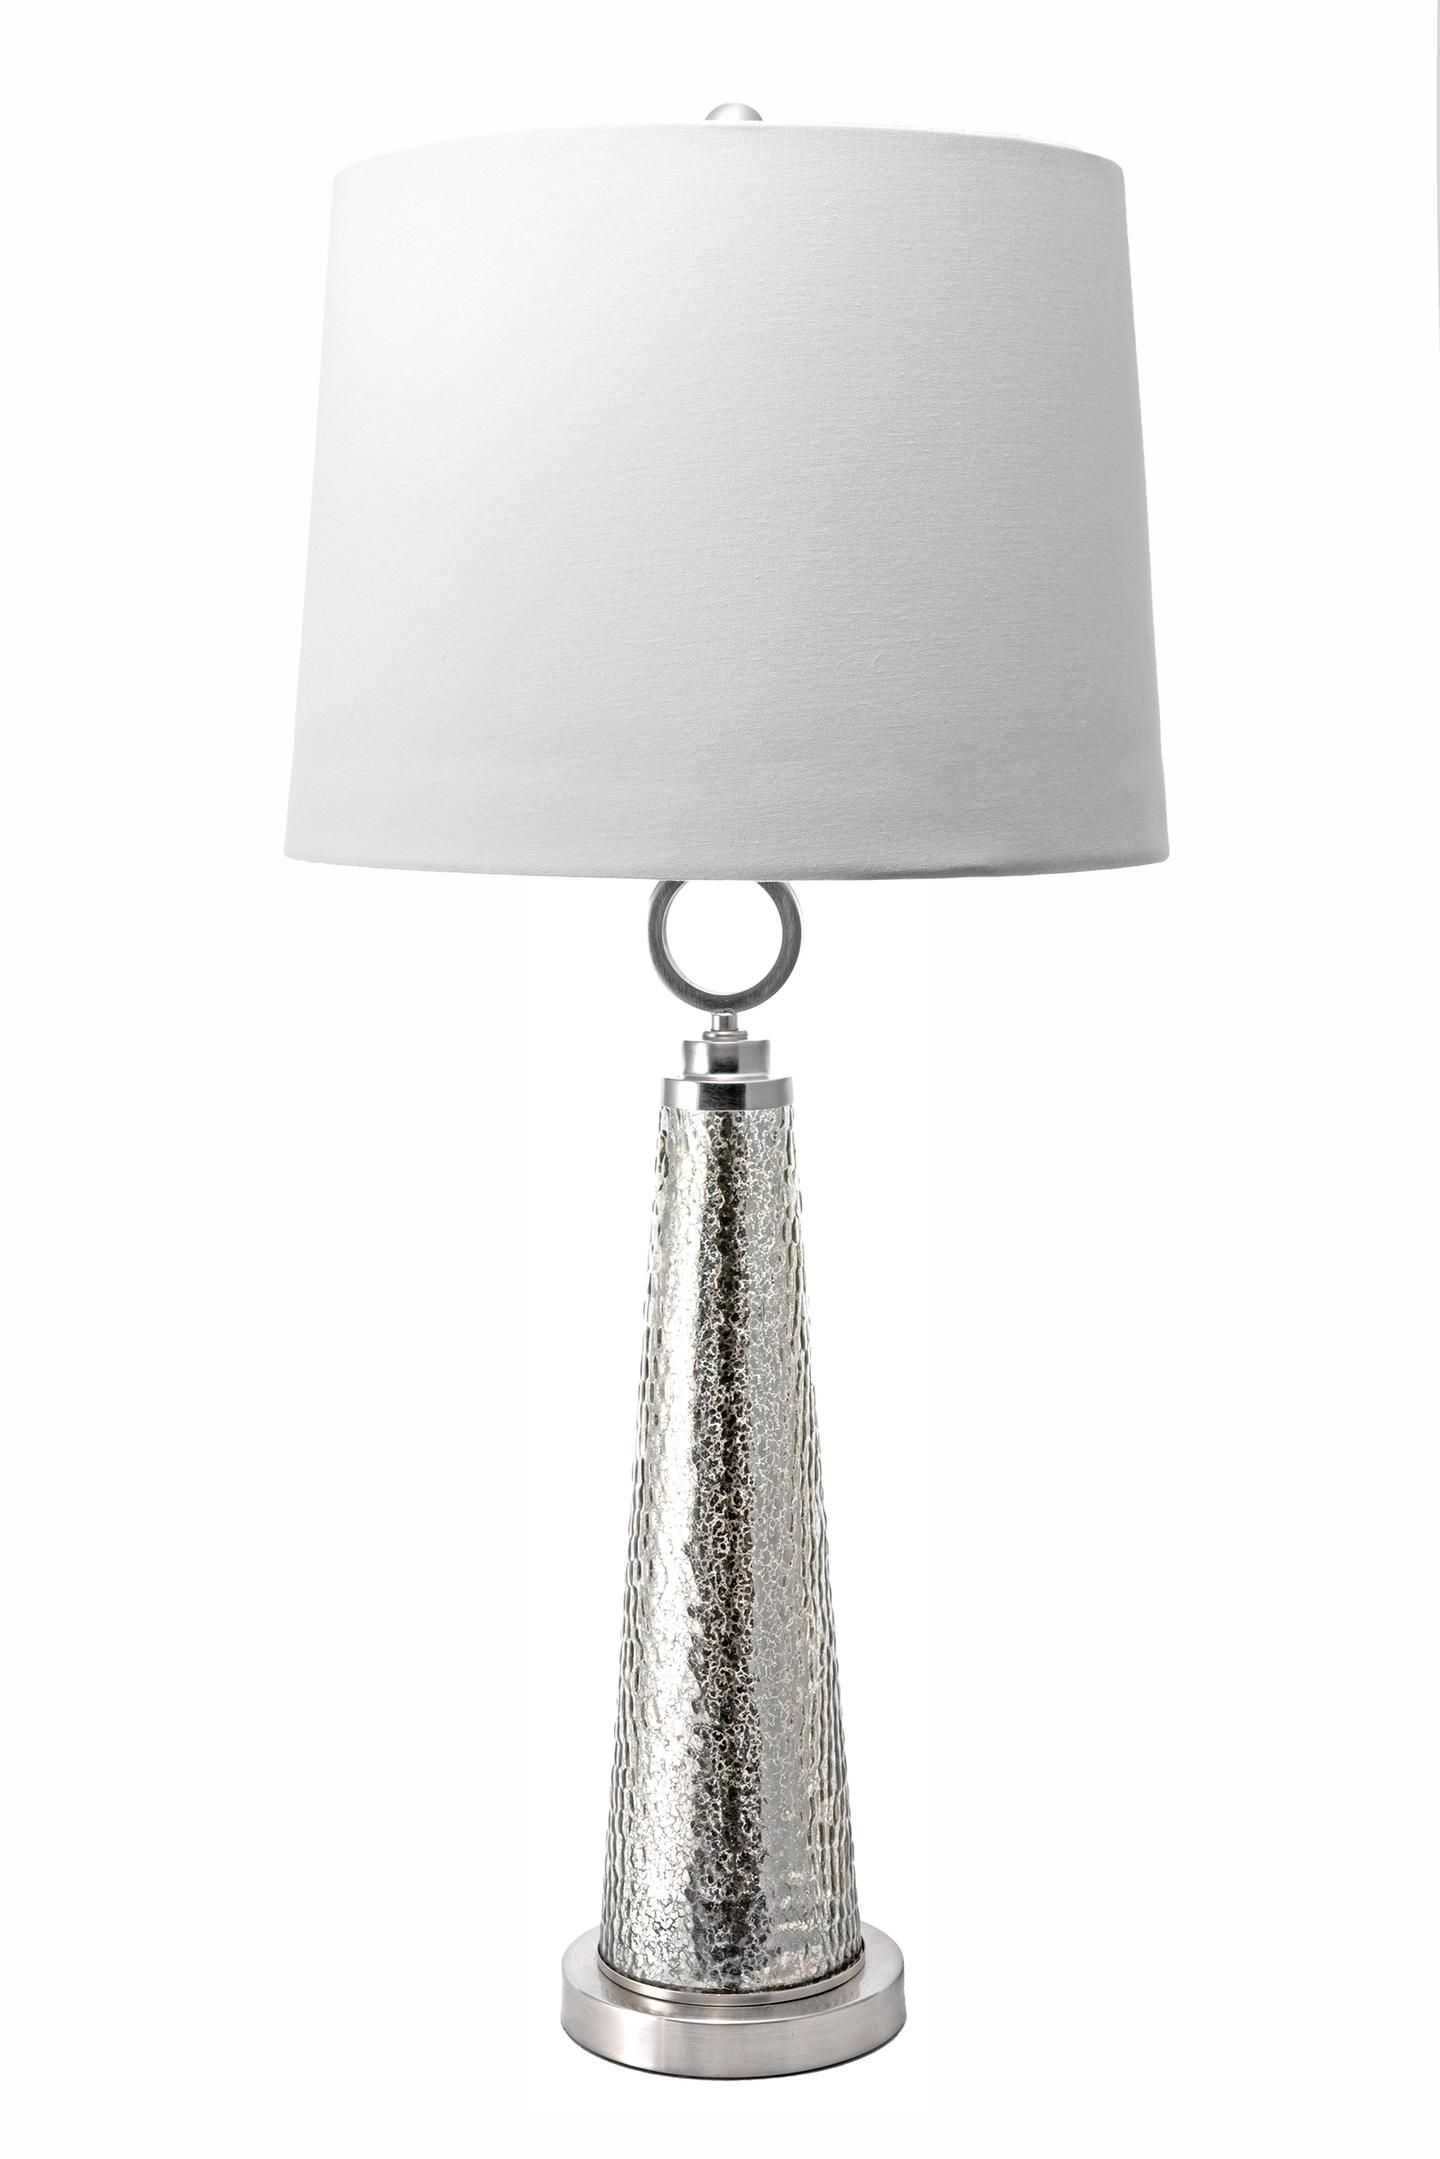 34inch Textured Glass Spire Linen Shade Table Lamp